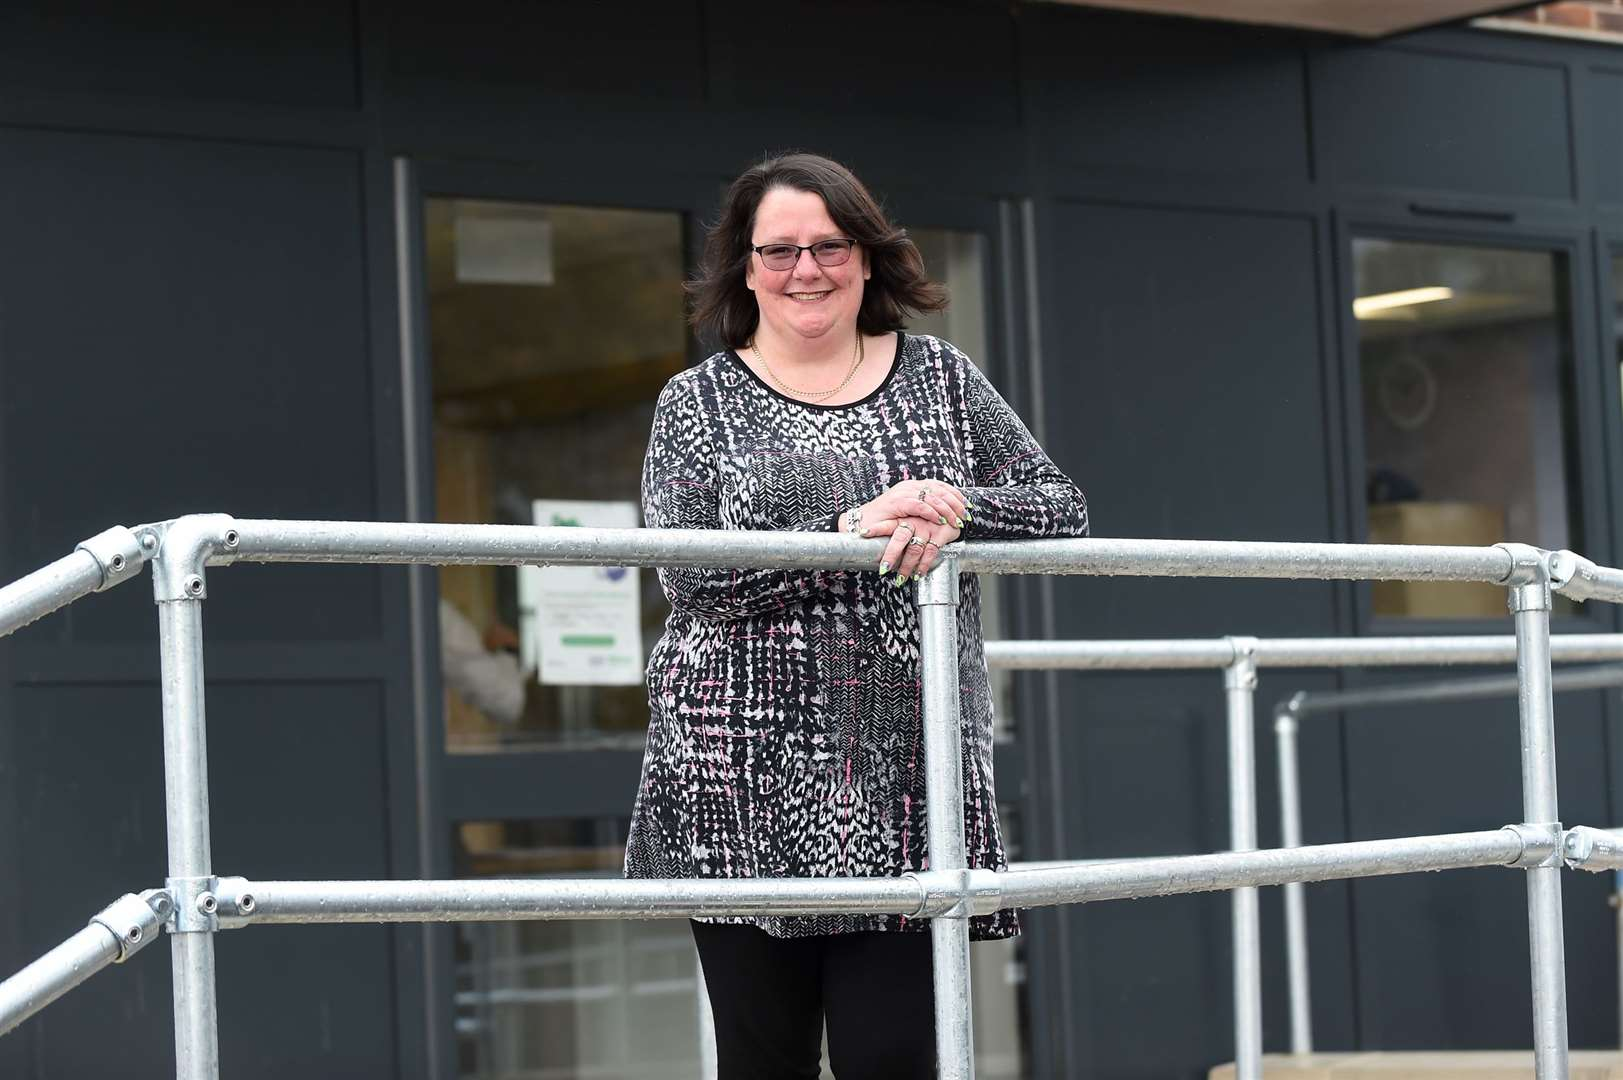 Headteacher Sarah Bradford says the children deserve a contemporary learning environment.